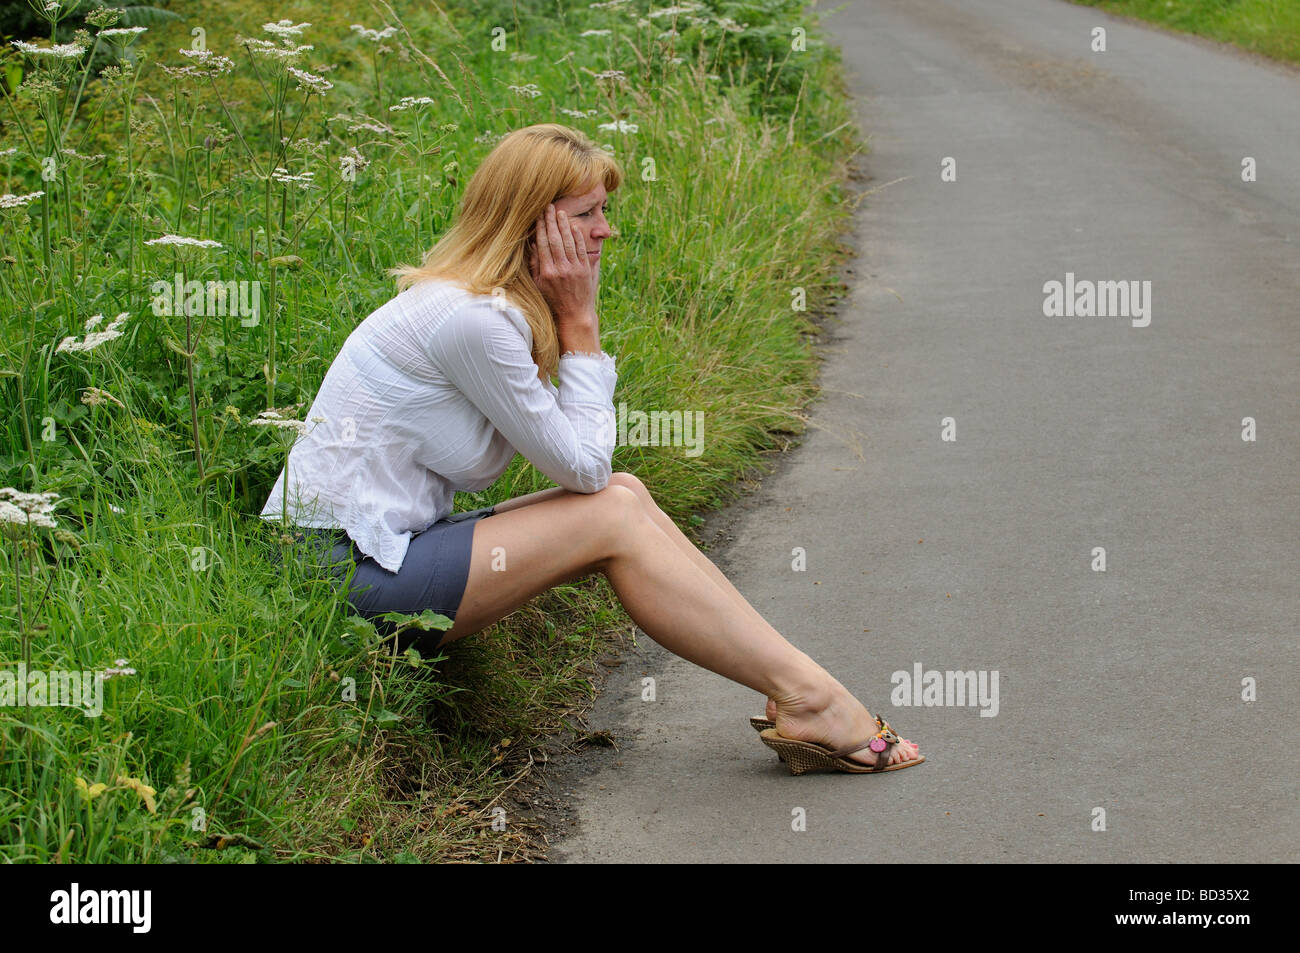 mature woman wearing a white shirt and skirt sitting on the roadside